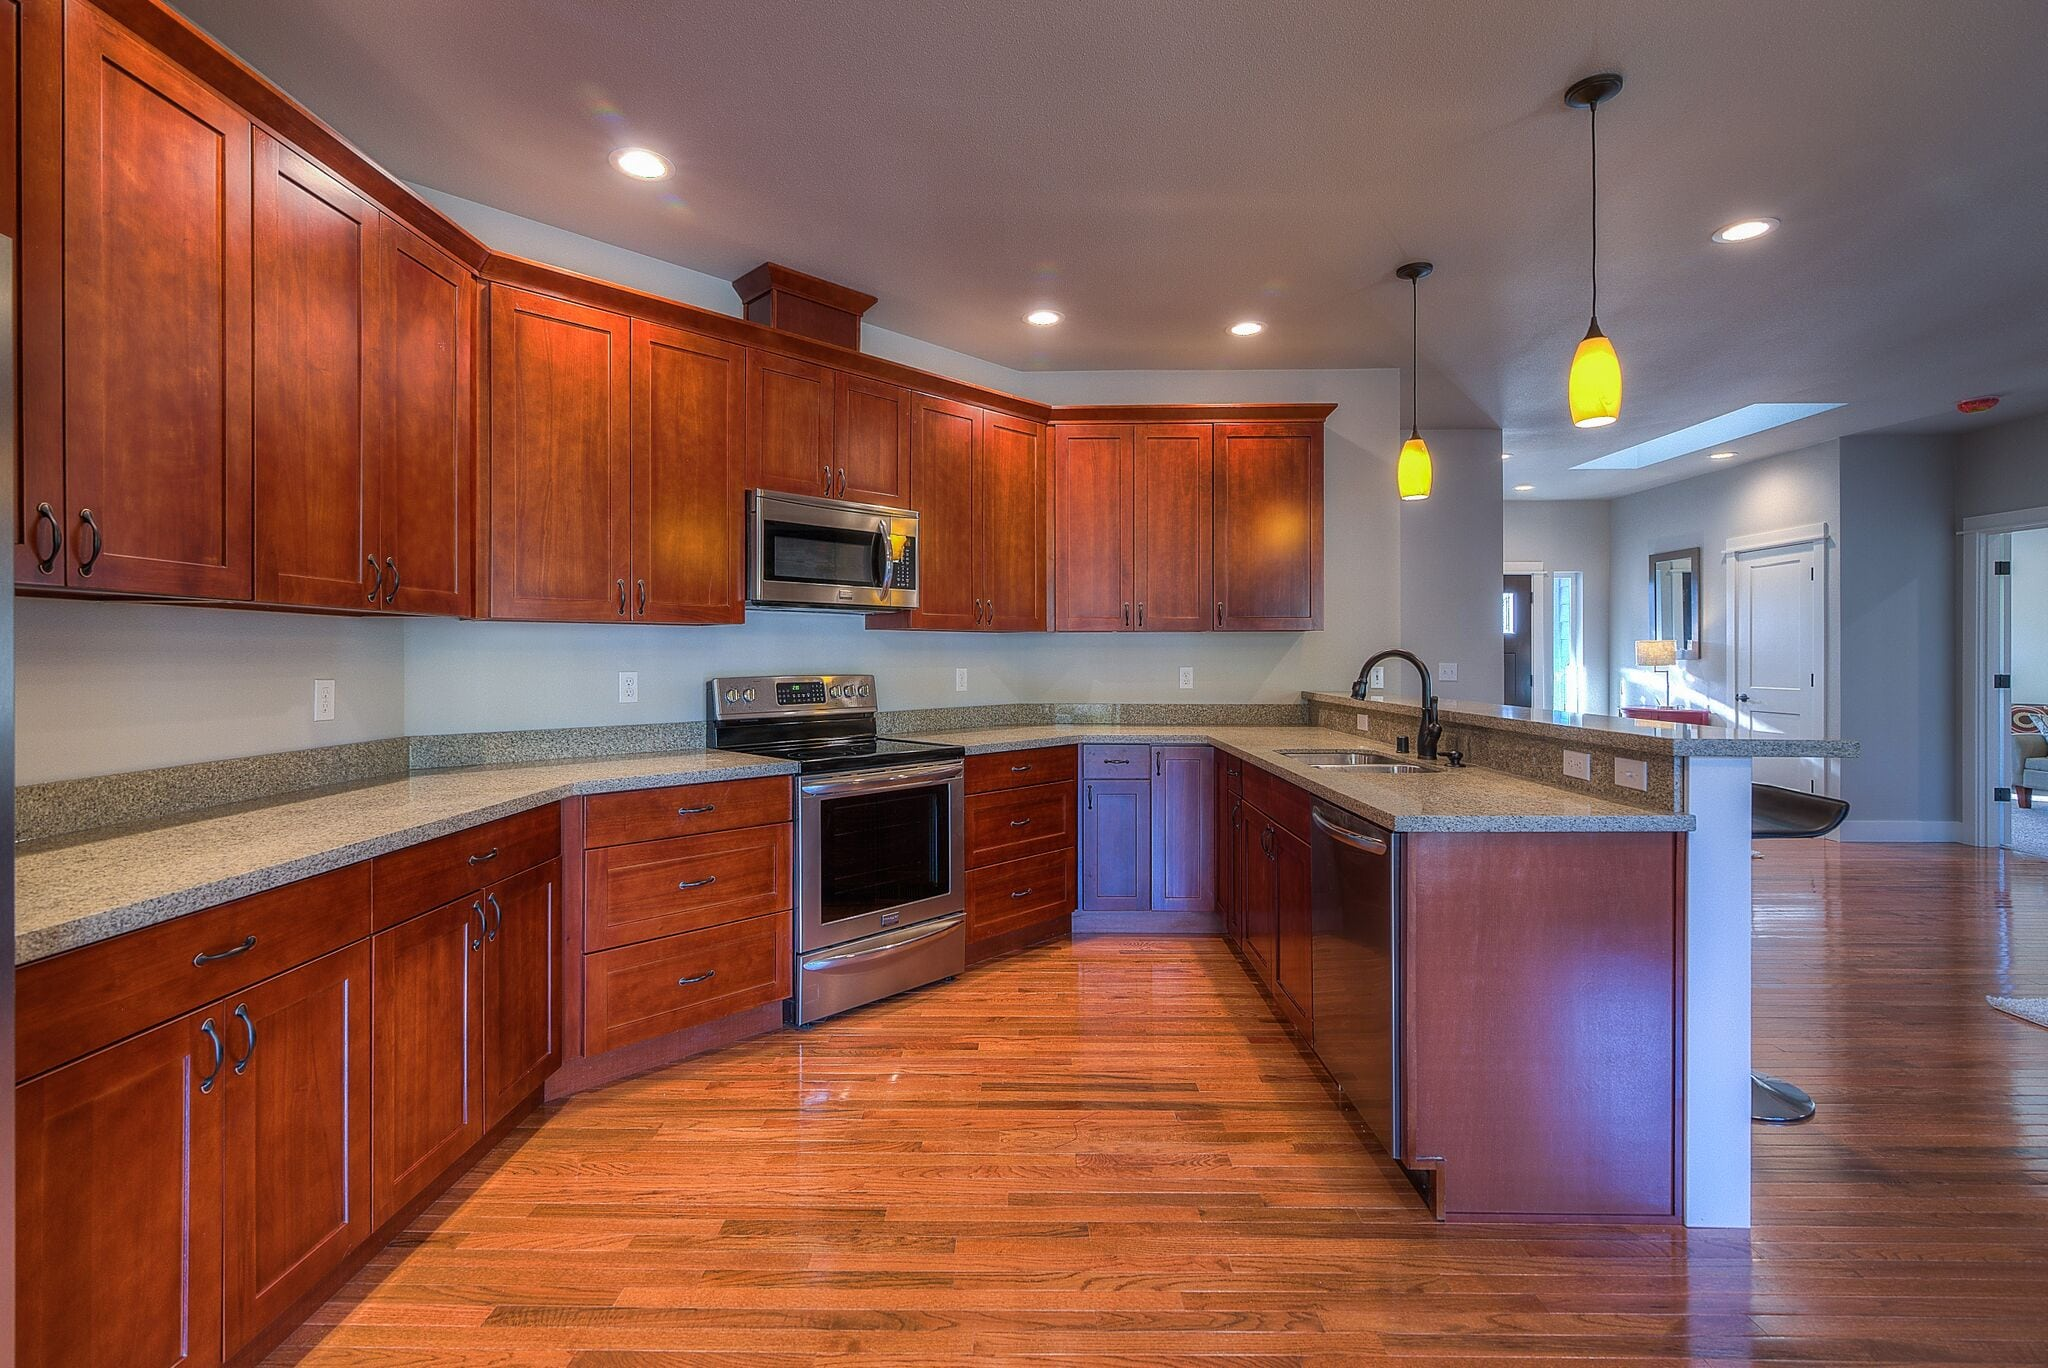 General Contractor And Home Builder Services Disney Associates New Semi Custom Homes